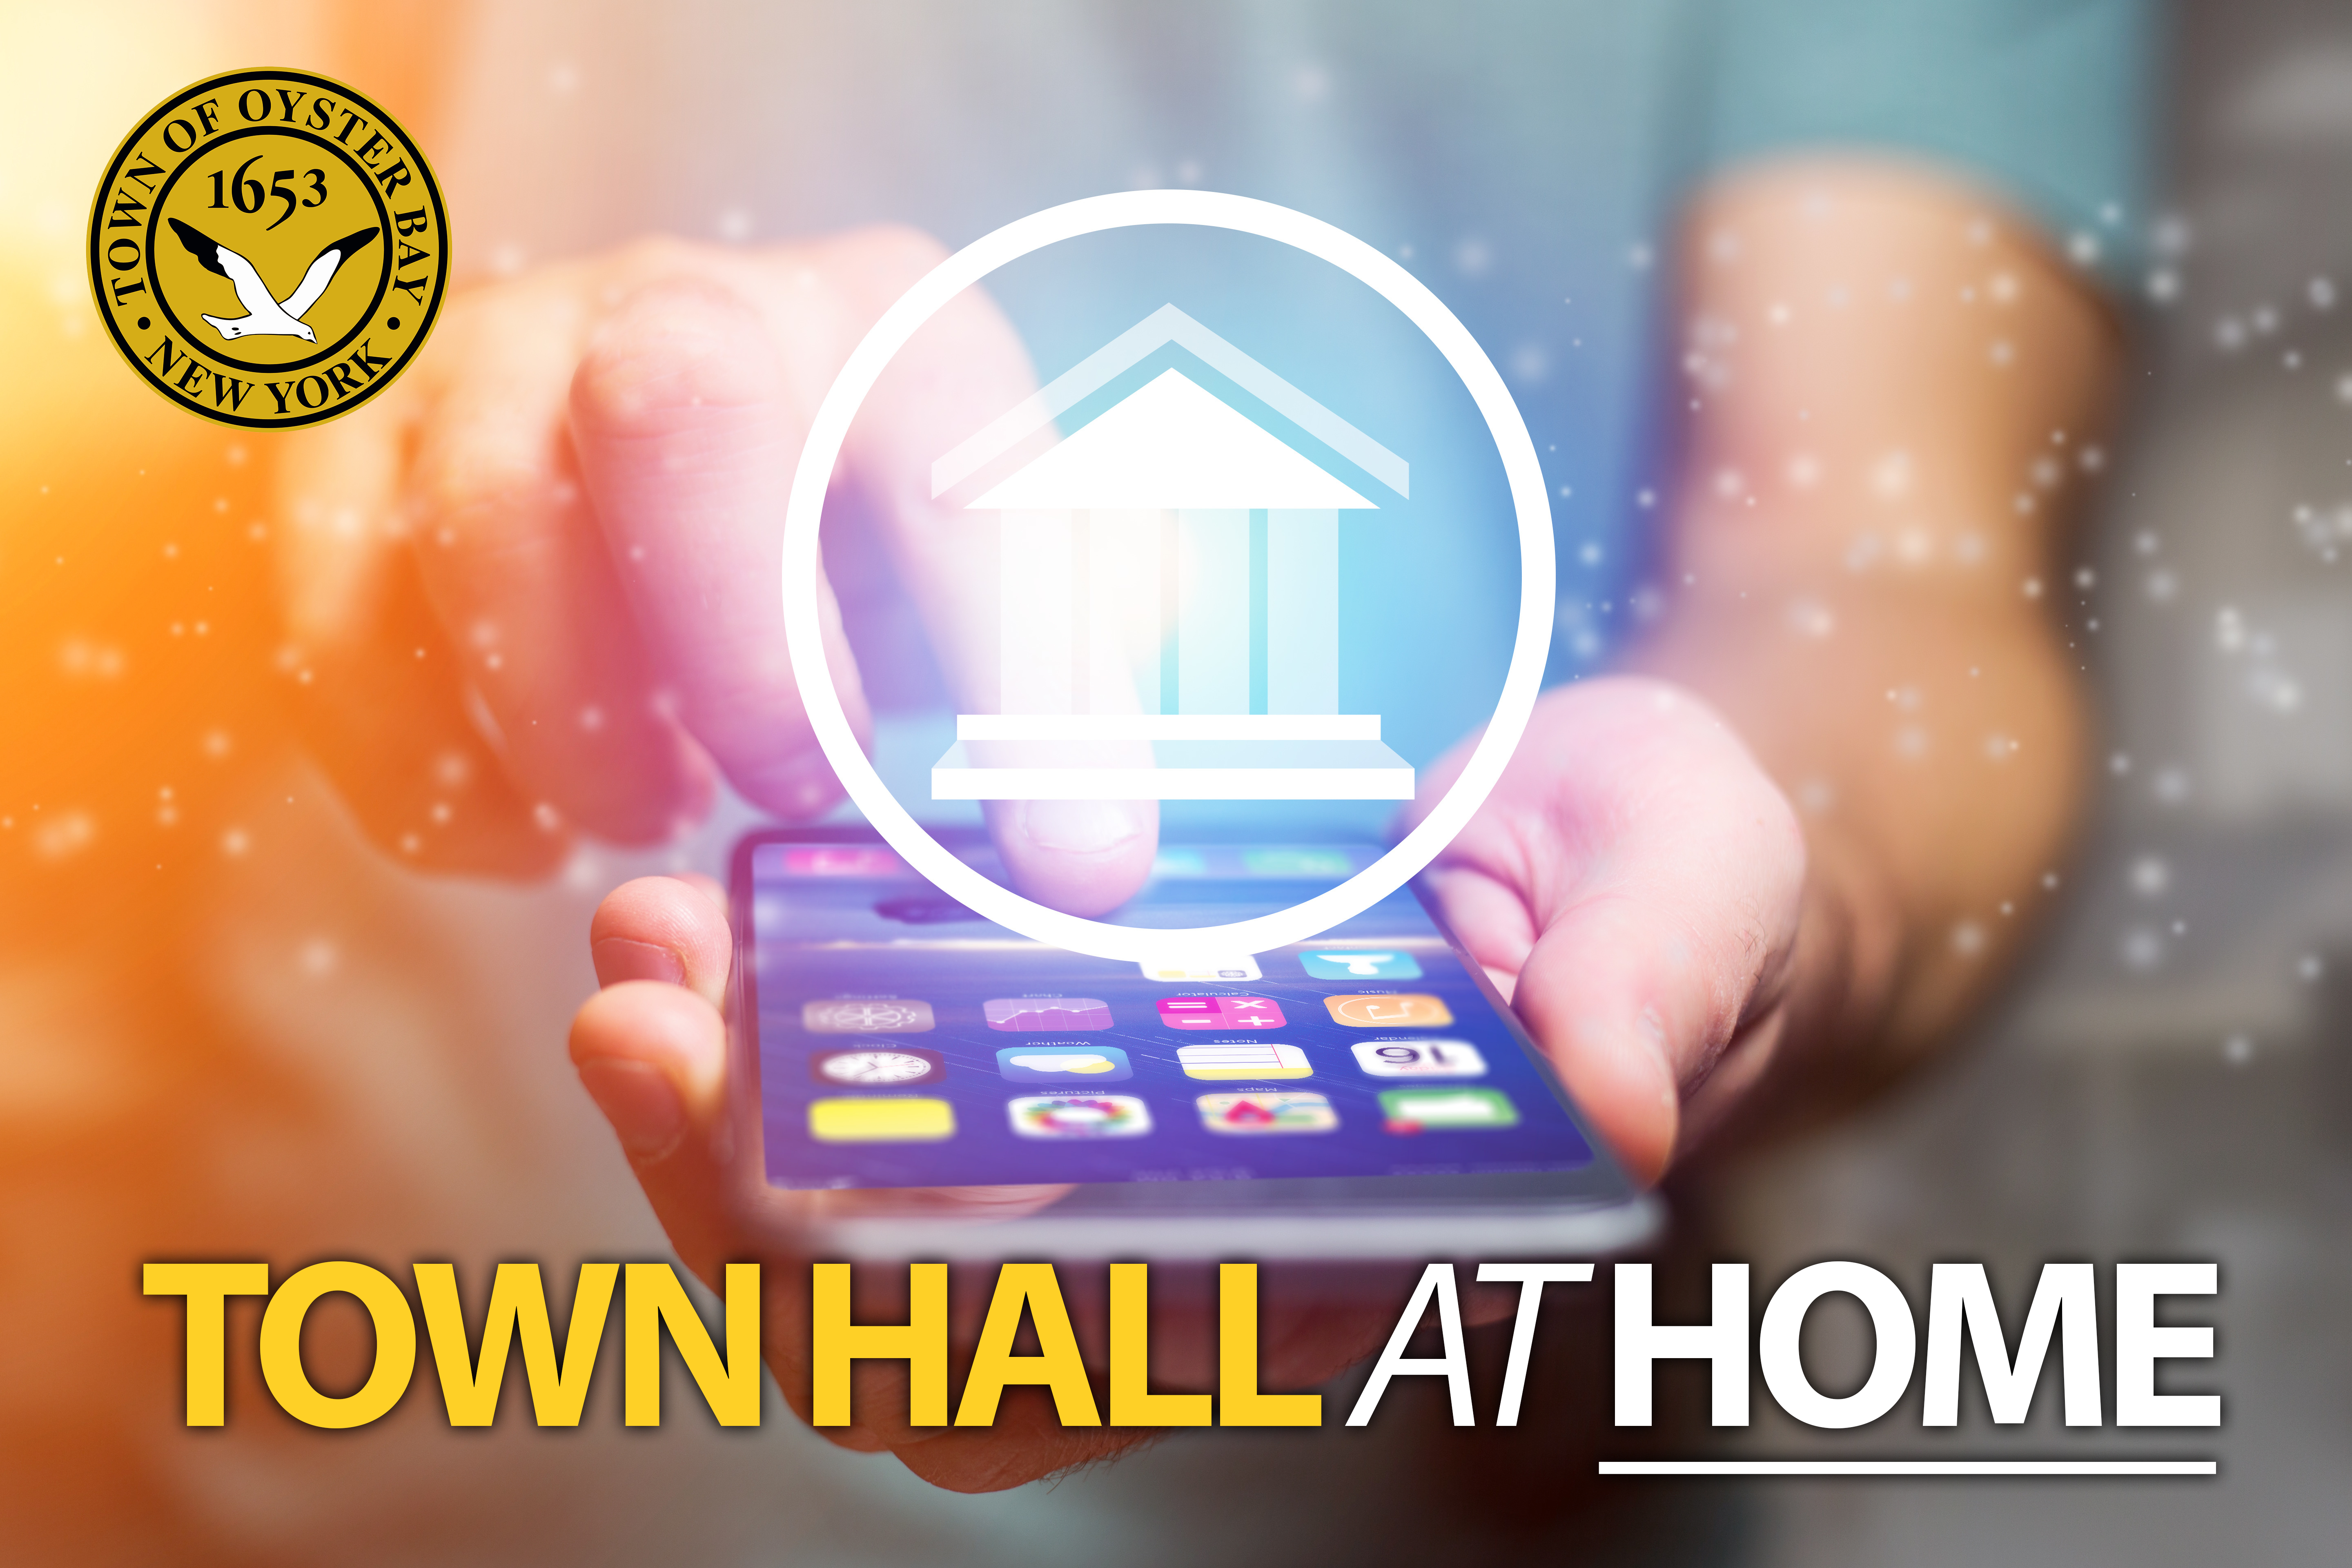 Town Hall at Home